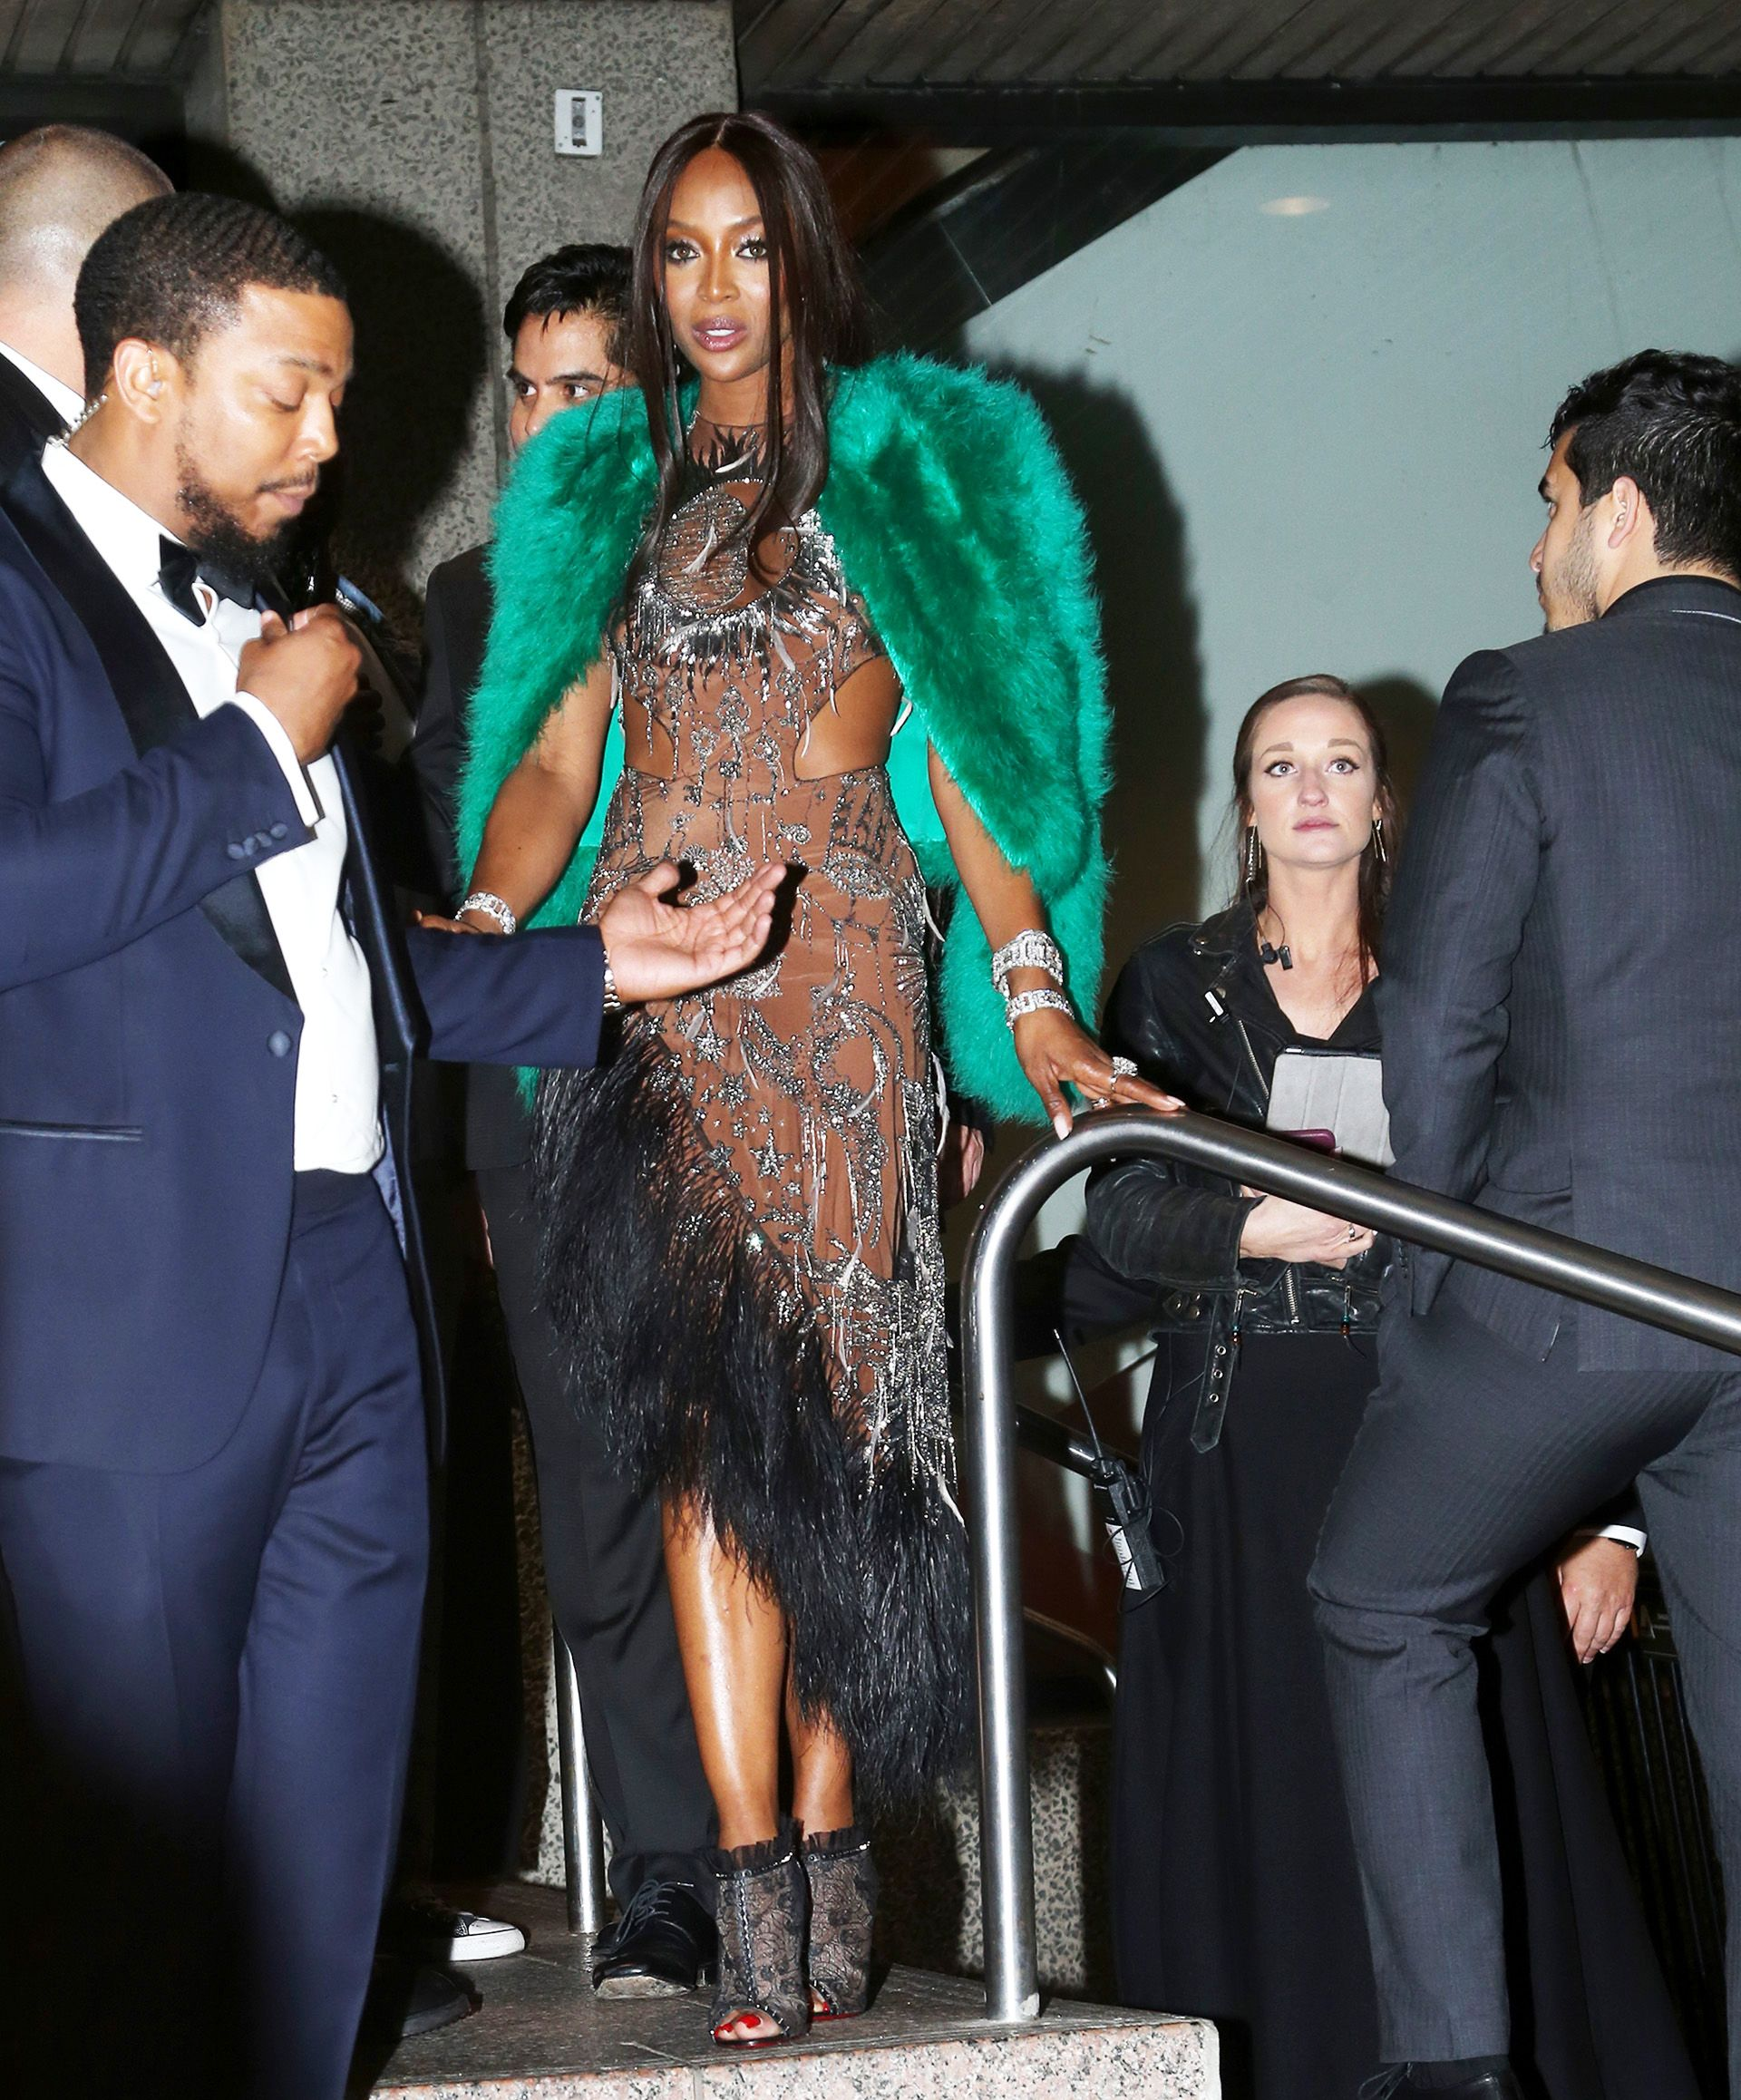 Naomi Campbell The model changed out of her pink Met Gala look and threw on a furry green jacket.